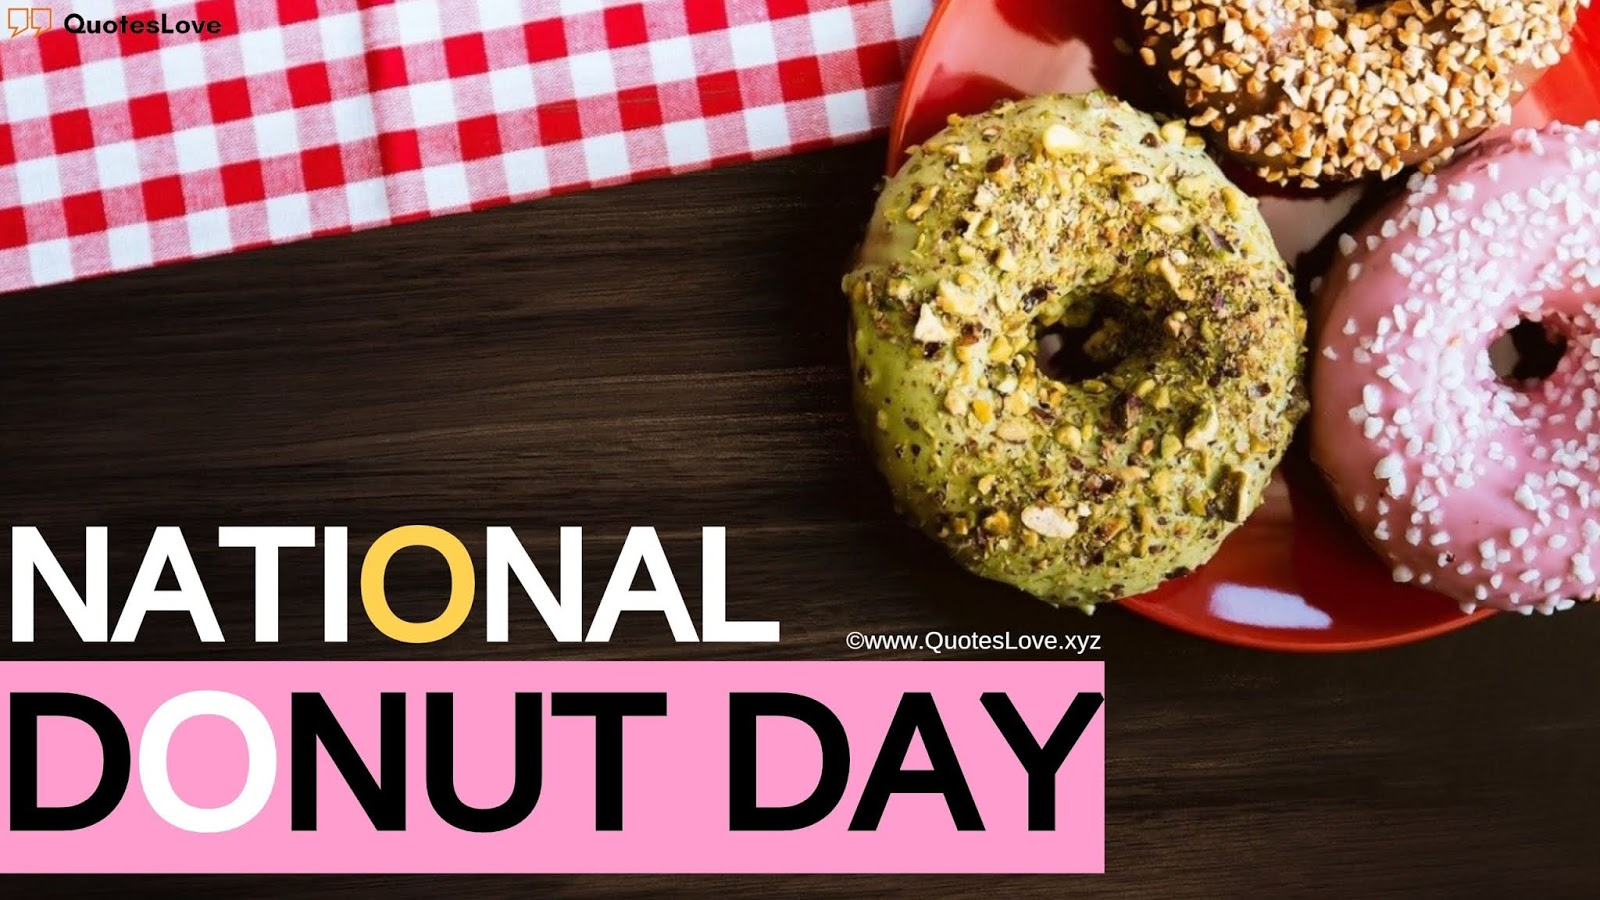 National Doughnut Day Quotes, Captions, Images, Pictures For Instagram